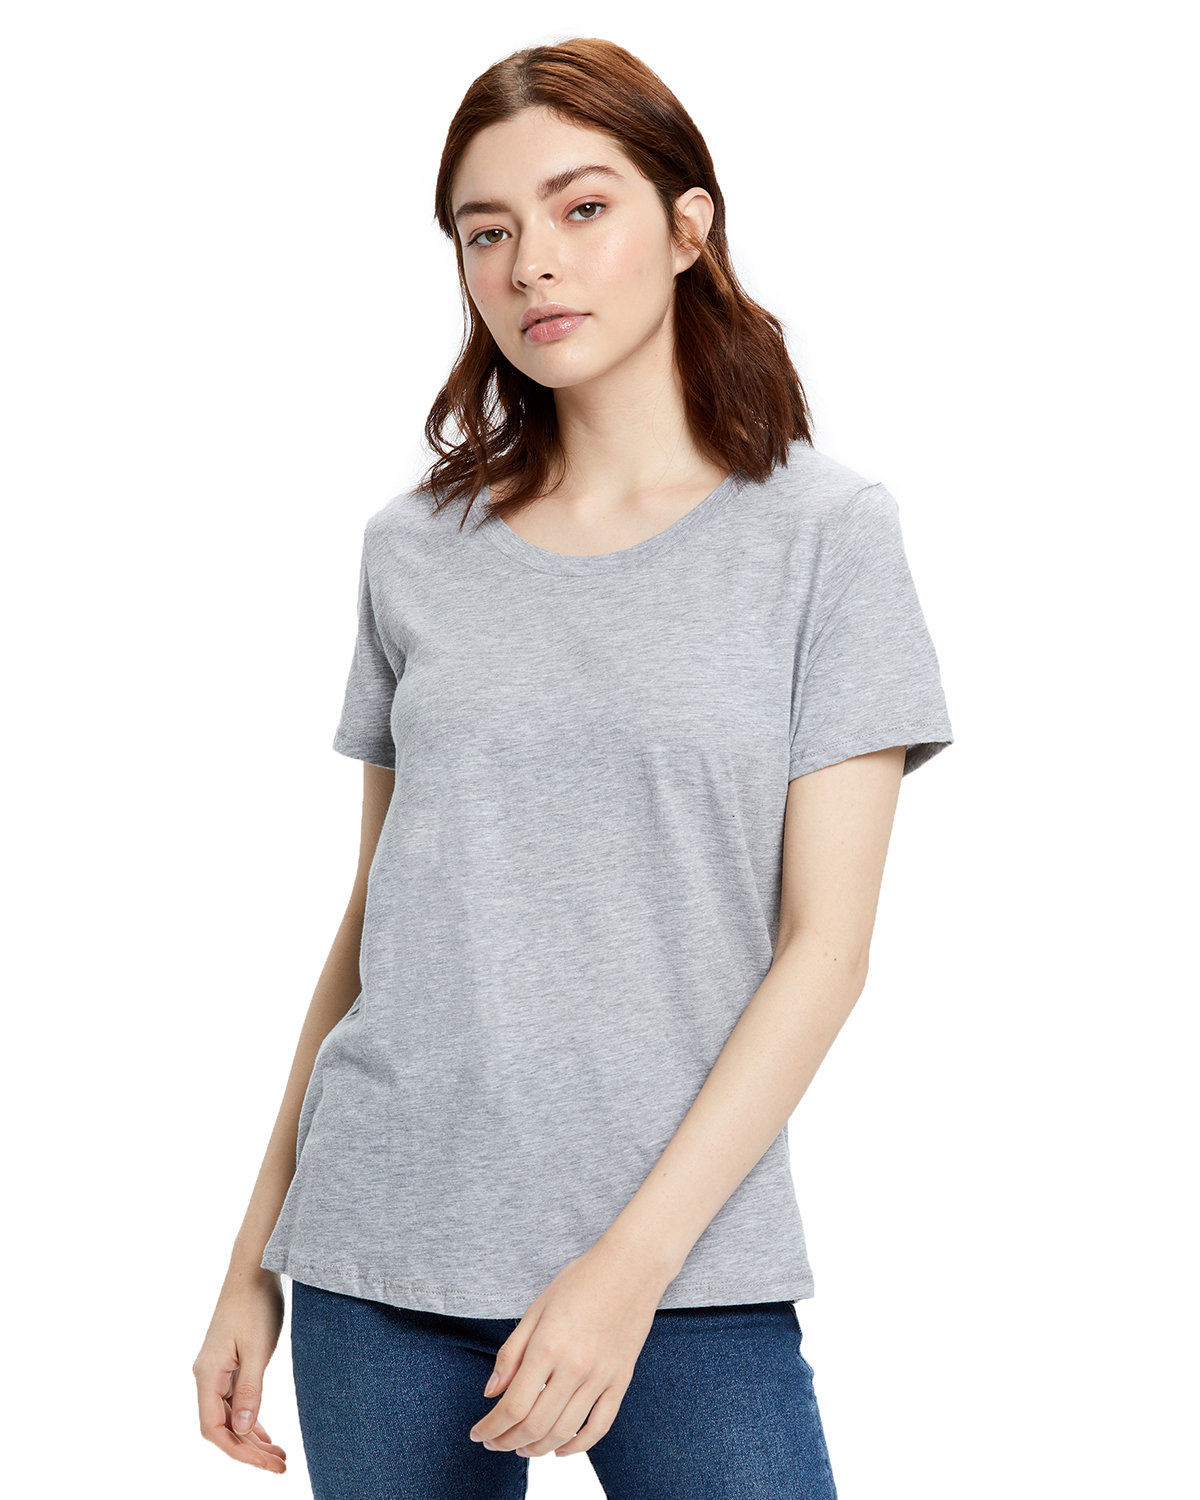 US Blanks Ladies' Made in USA Short Sleeve Crew T-Shirt HEATHER GREY